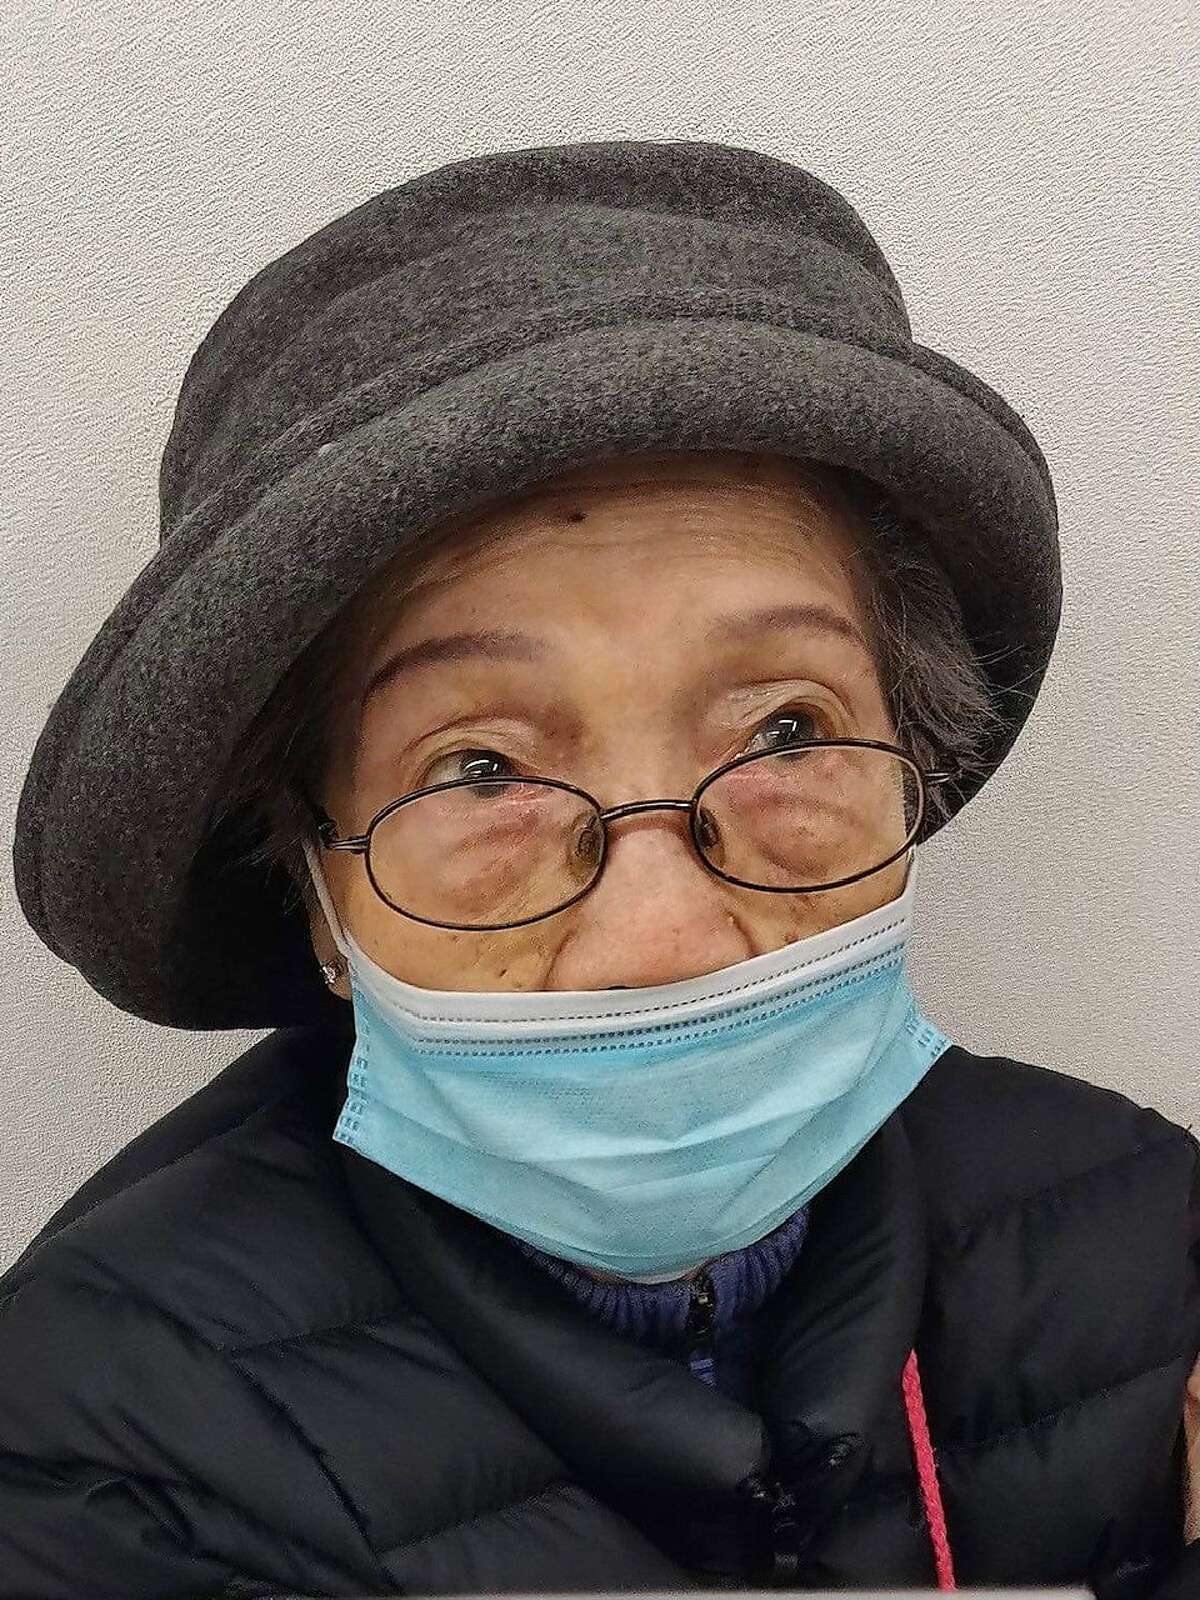 Anh Taylor, 94, seen here just after getting her COVID vaccine, was the victim of an unprovoked stabbing.